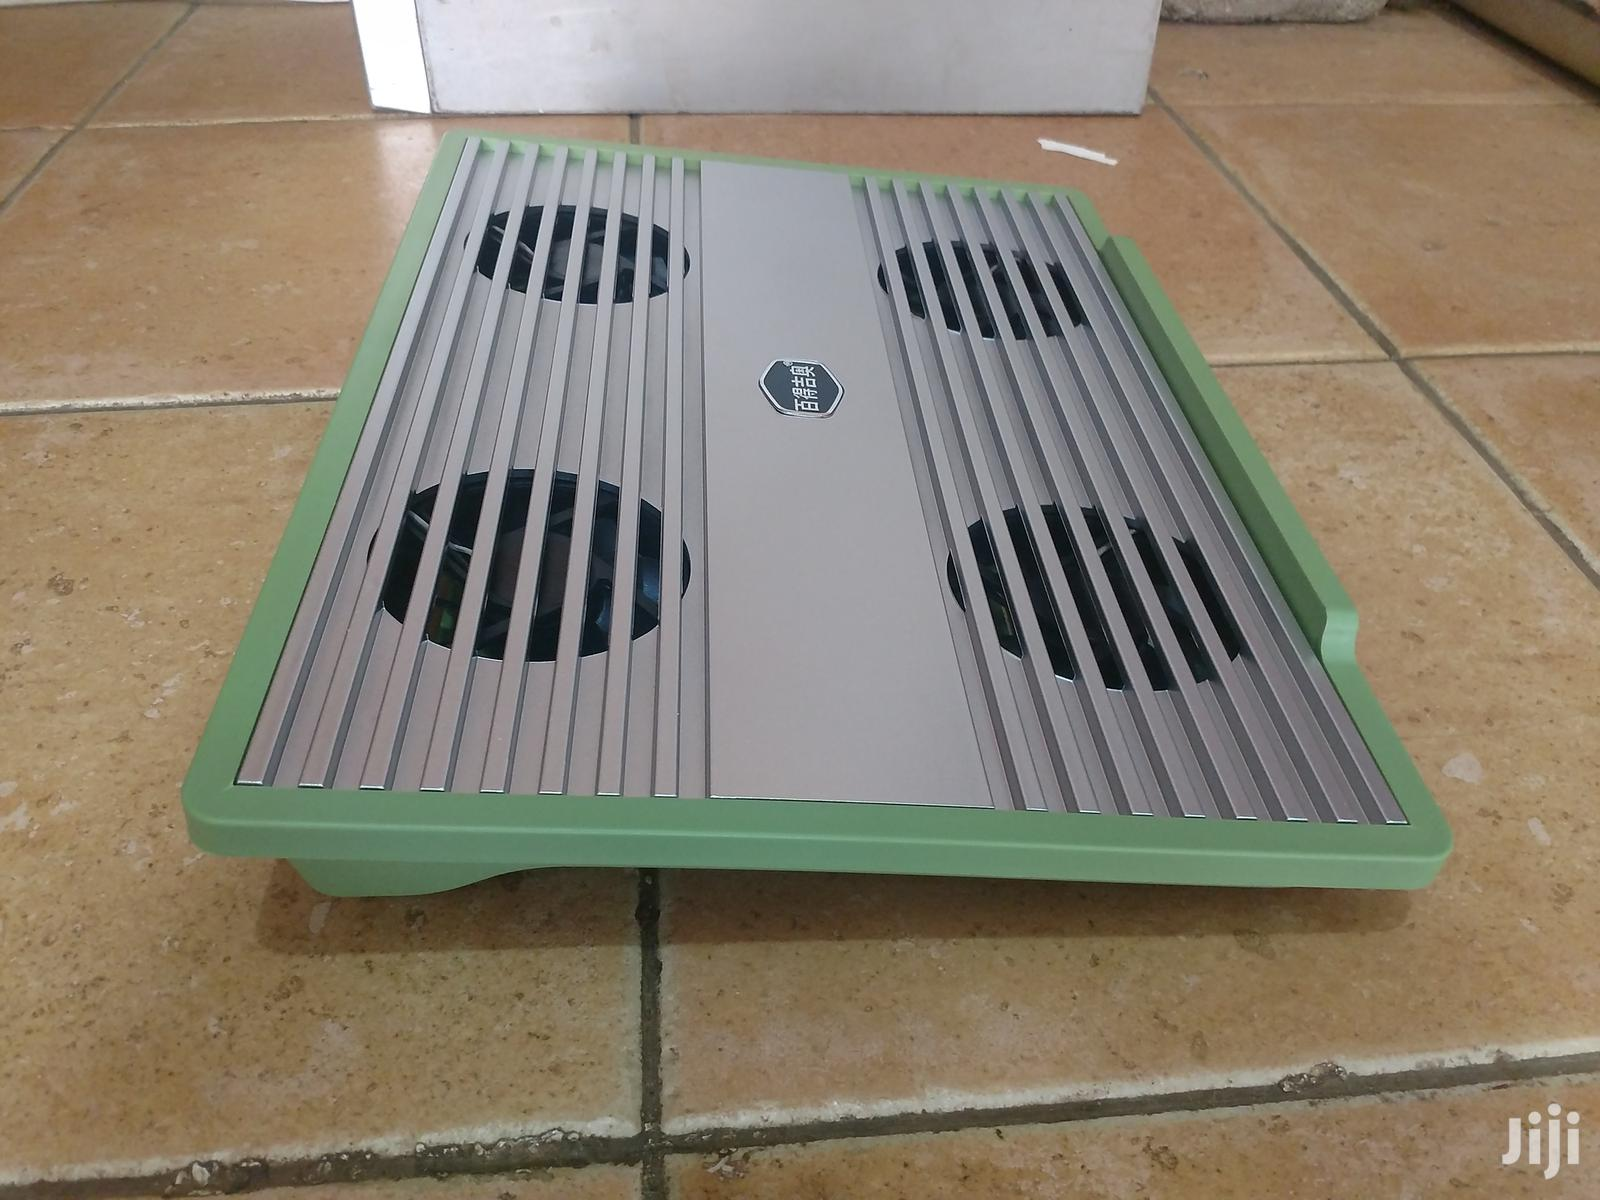 Laptop 4 Fan Cooling Pad | Computer Accessories  for sale in Accra Metropolitan, Greater Accra, Ghana